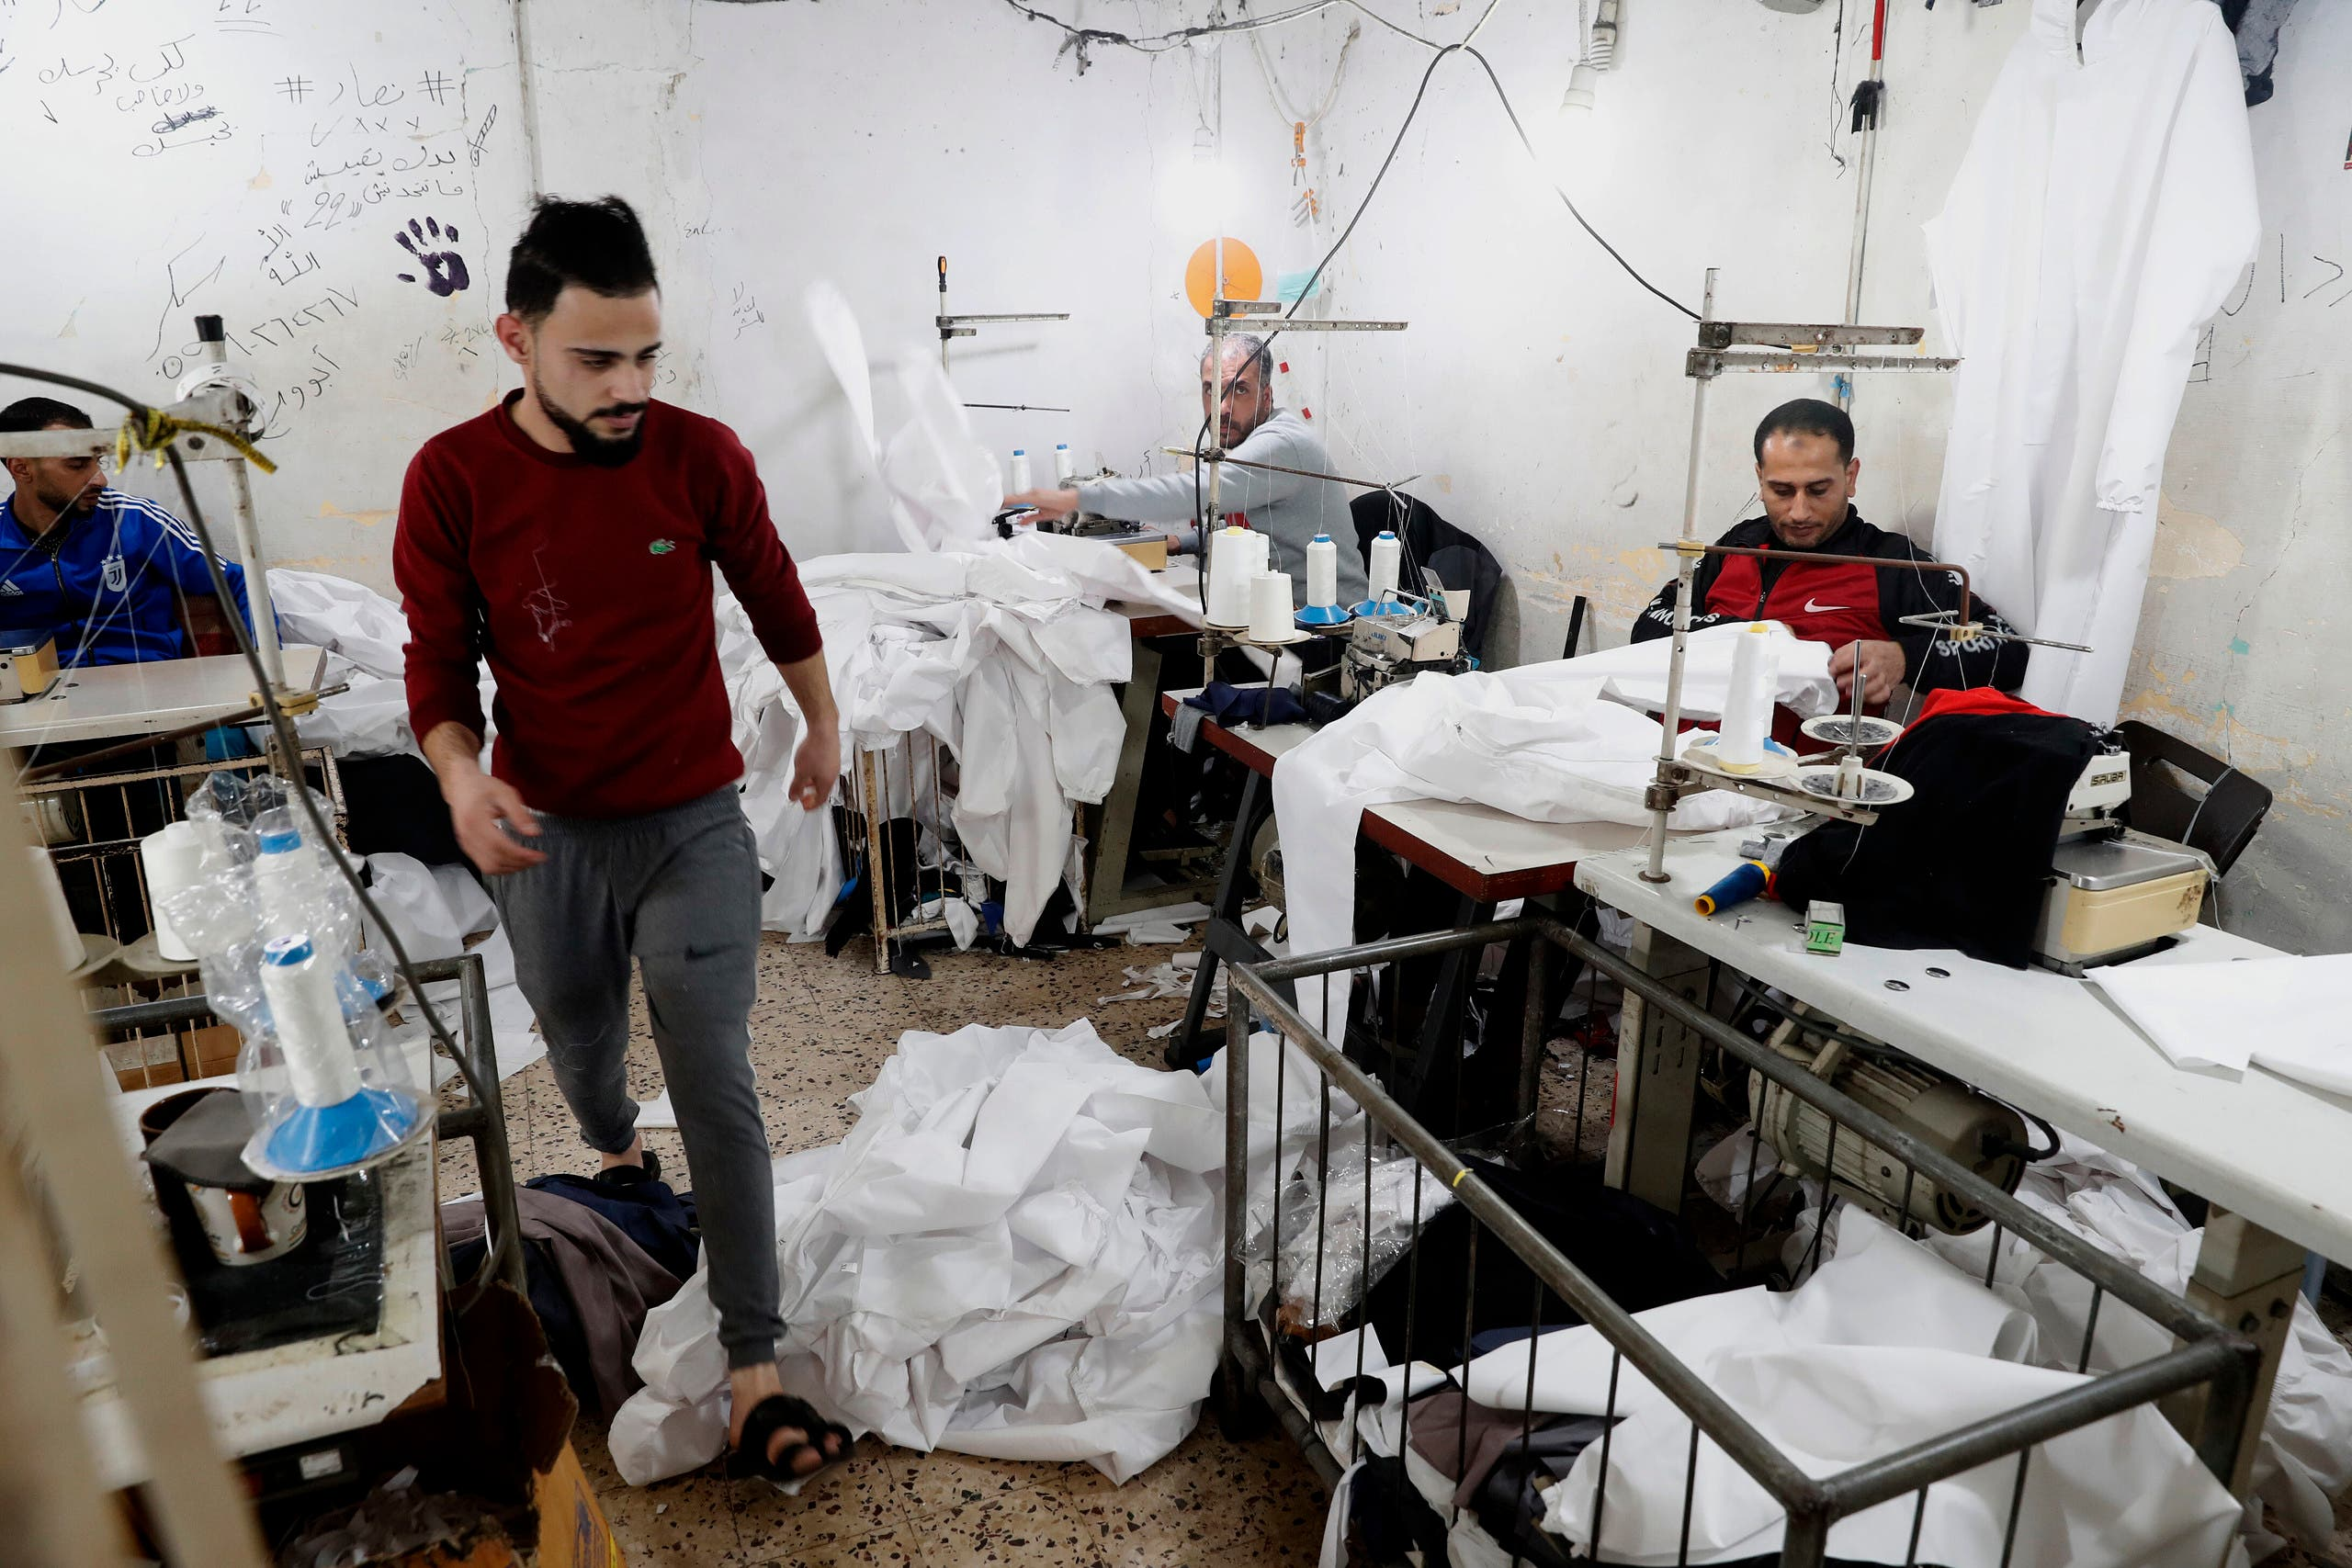 Palestinians make protective overalls to help shield people from the coronavirus, that will be exported to Israel, at a local factory, in Gaza City, Monday, March 30, 2020. (AP)